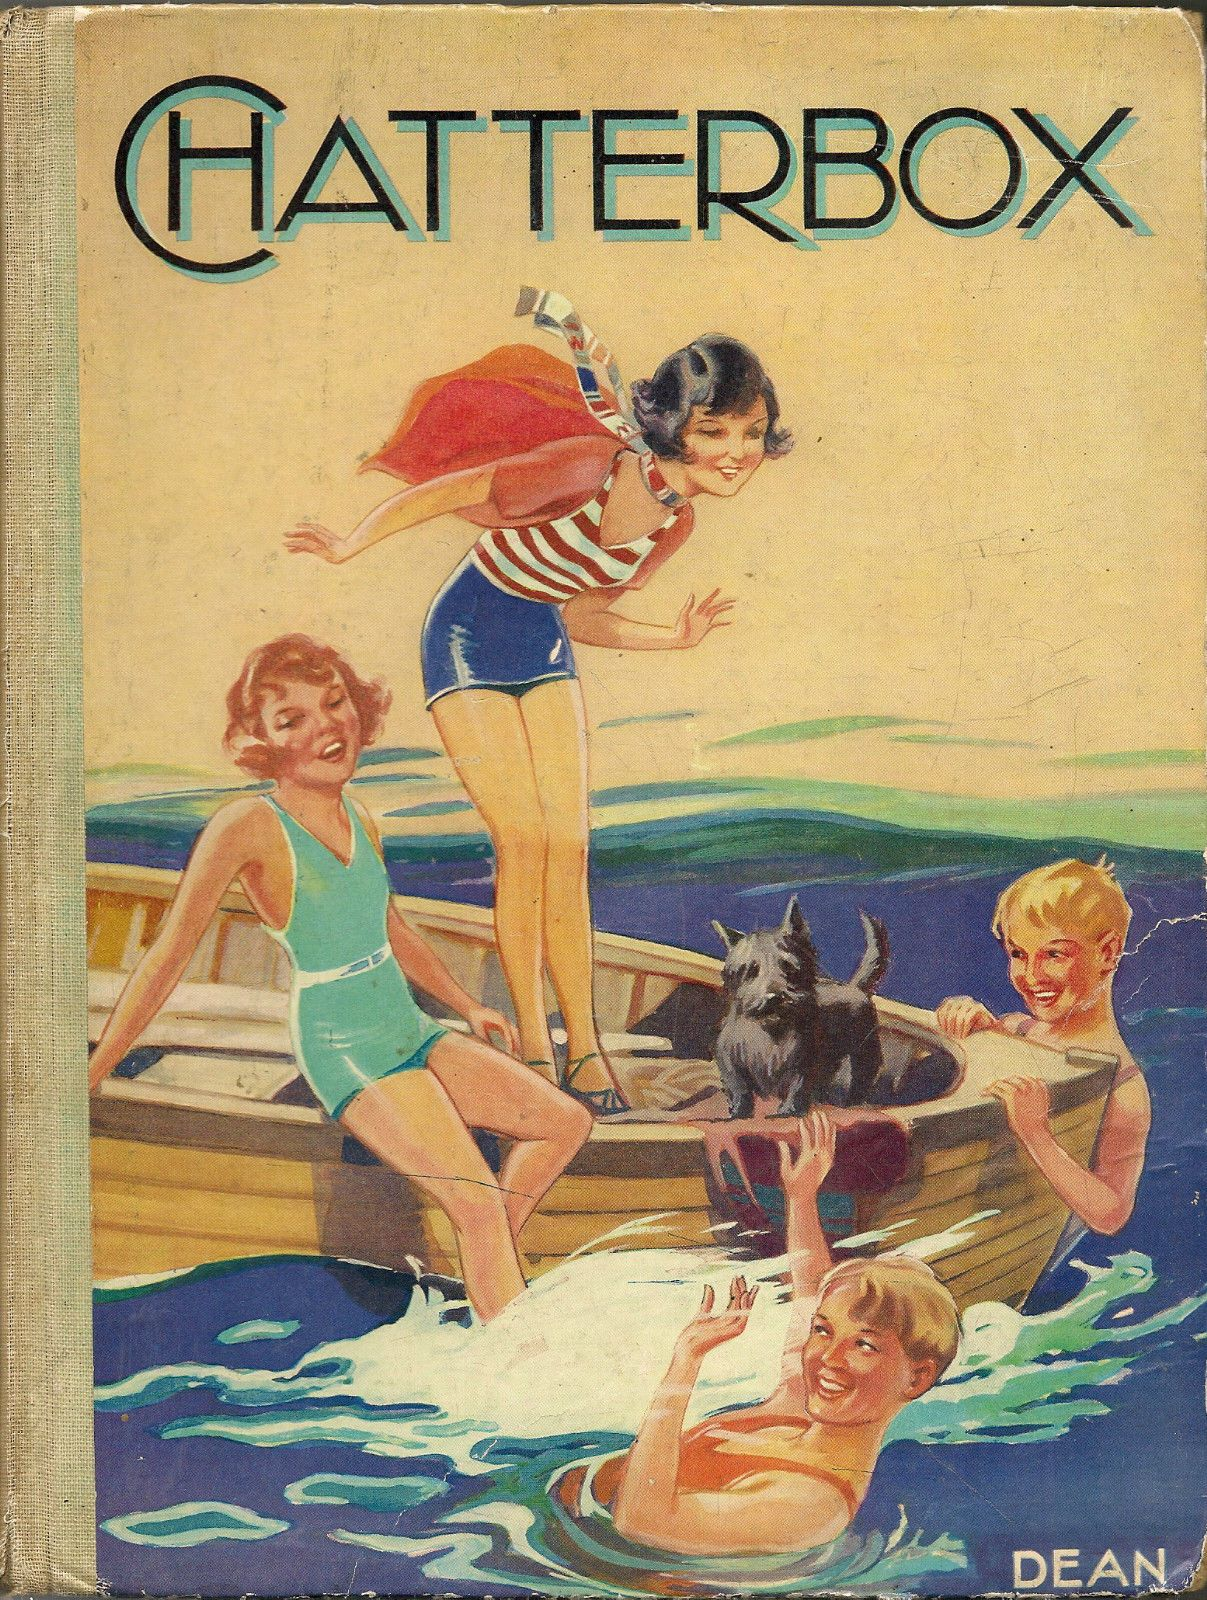 1936 7 Chatterbox Book 221 Clean Pages Dated Annual